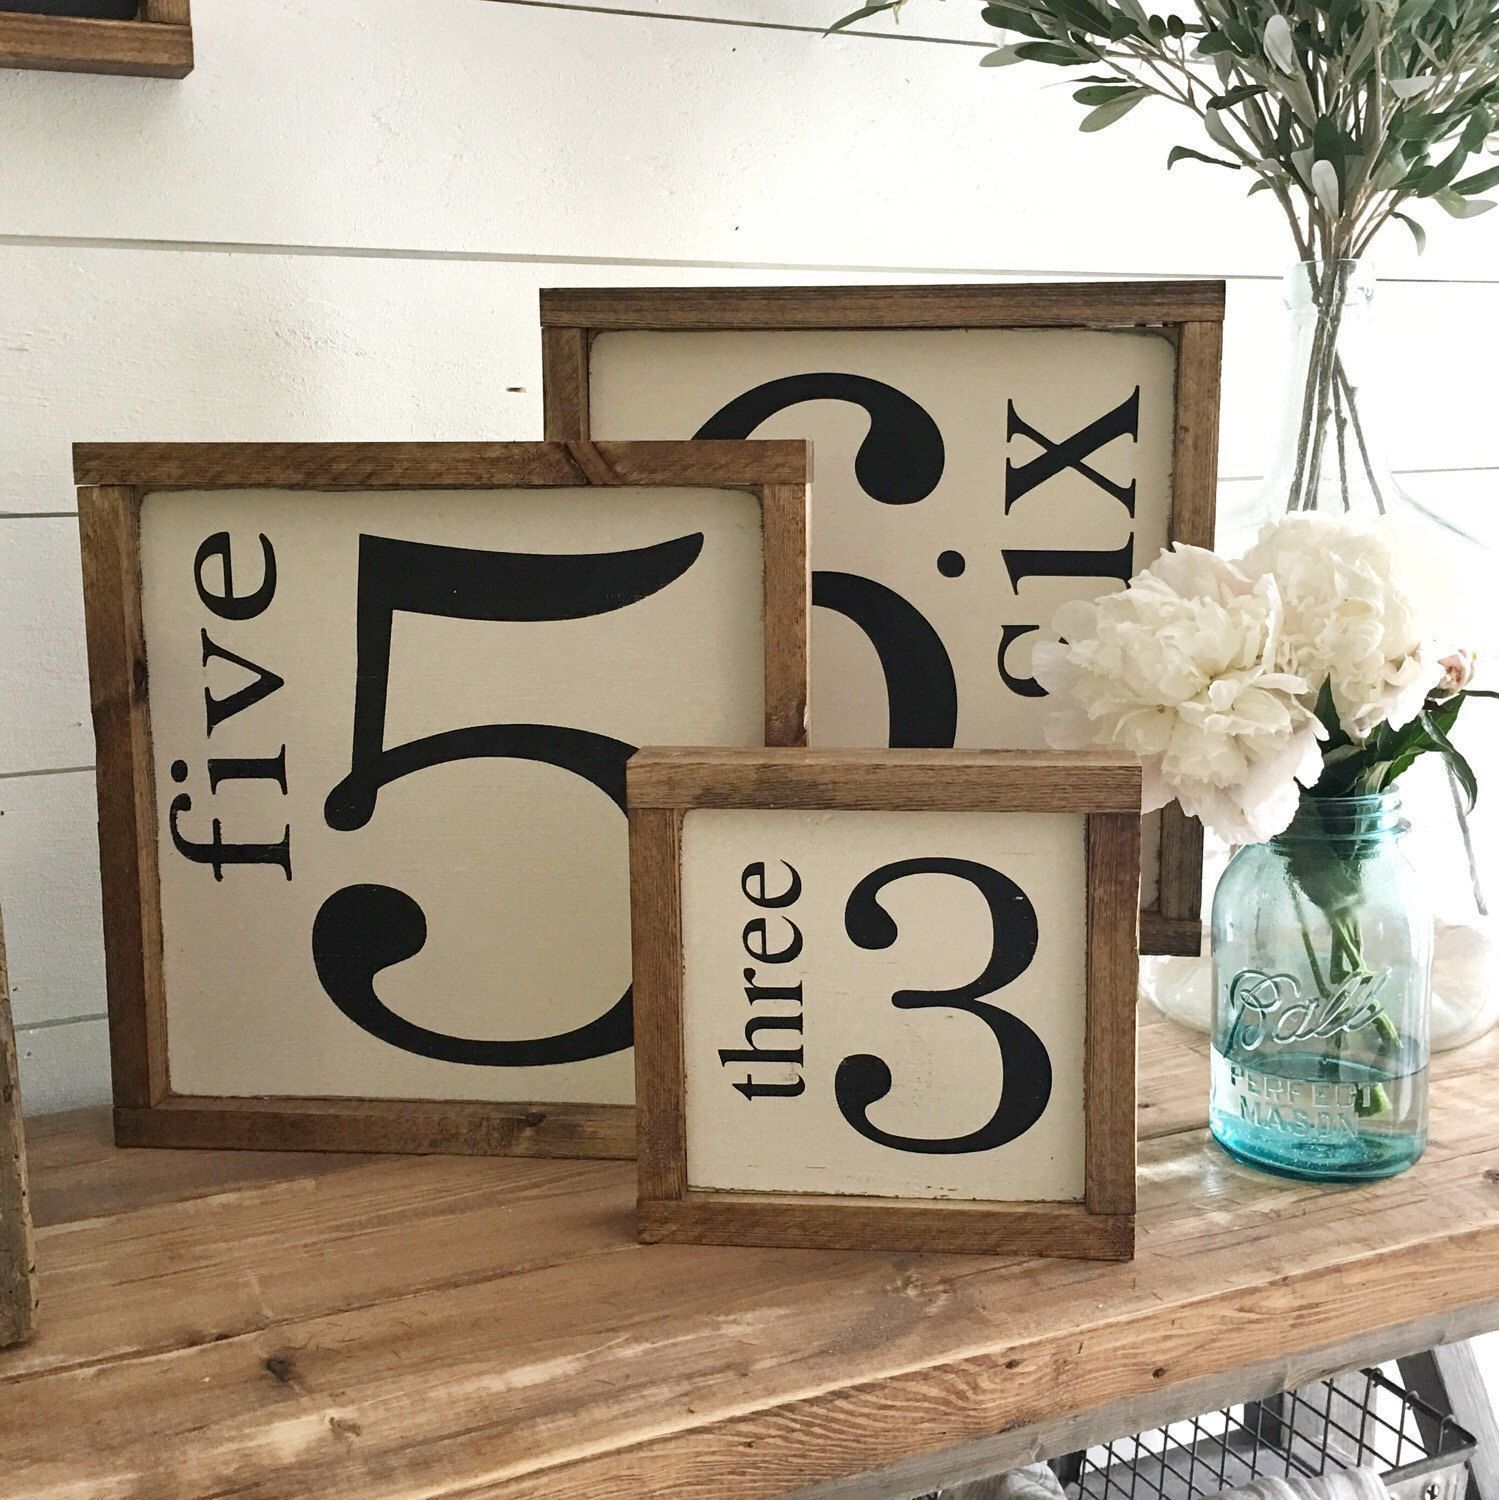 Farmhouse Signs 48 Farmhouse signs, Wooden signs diy